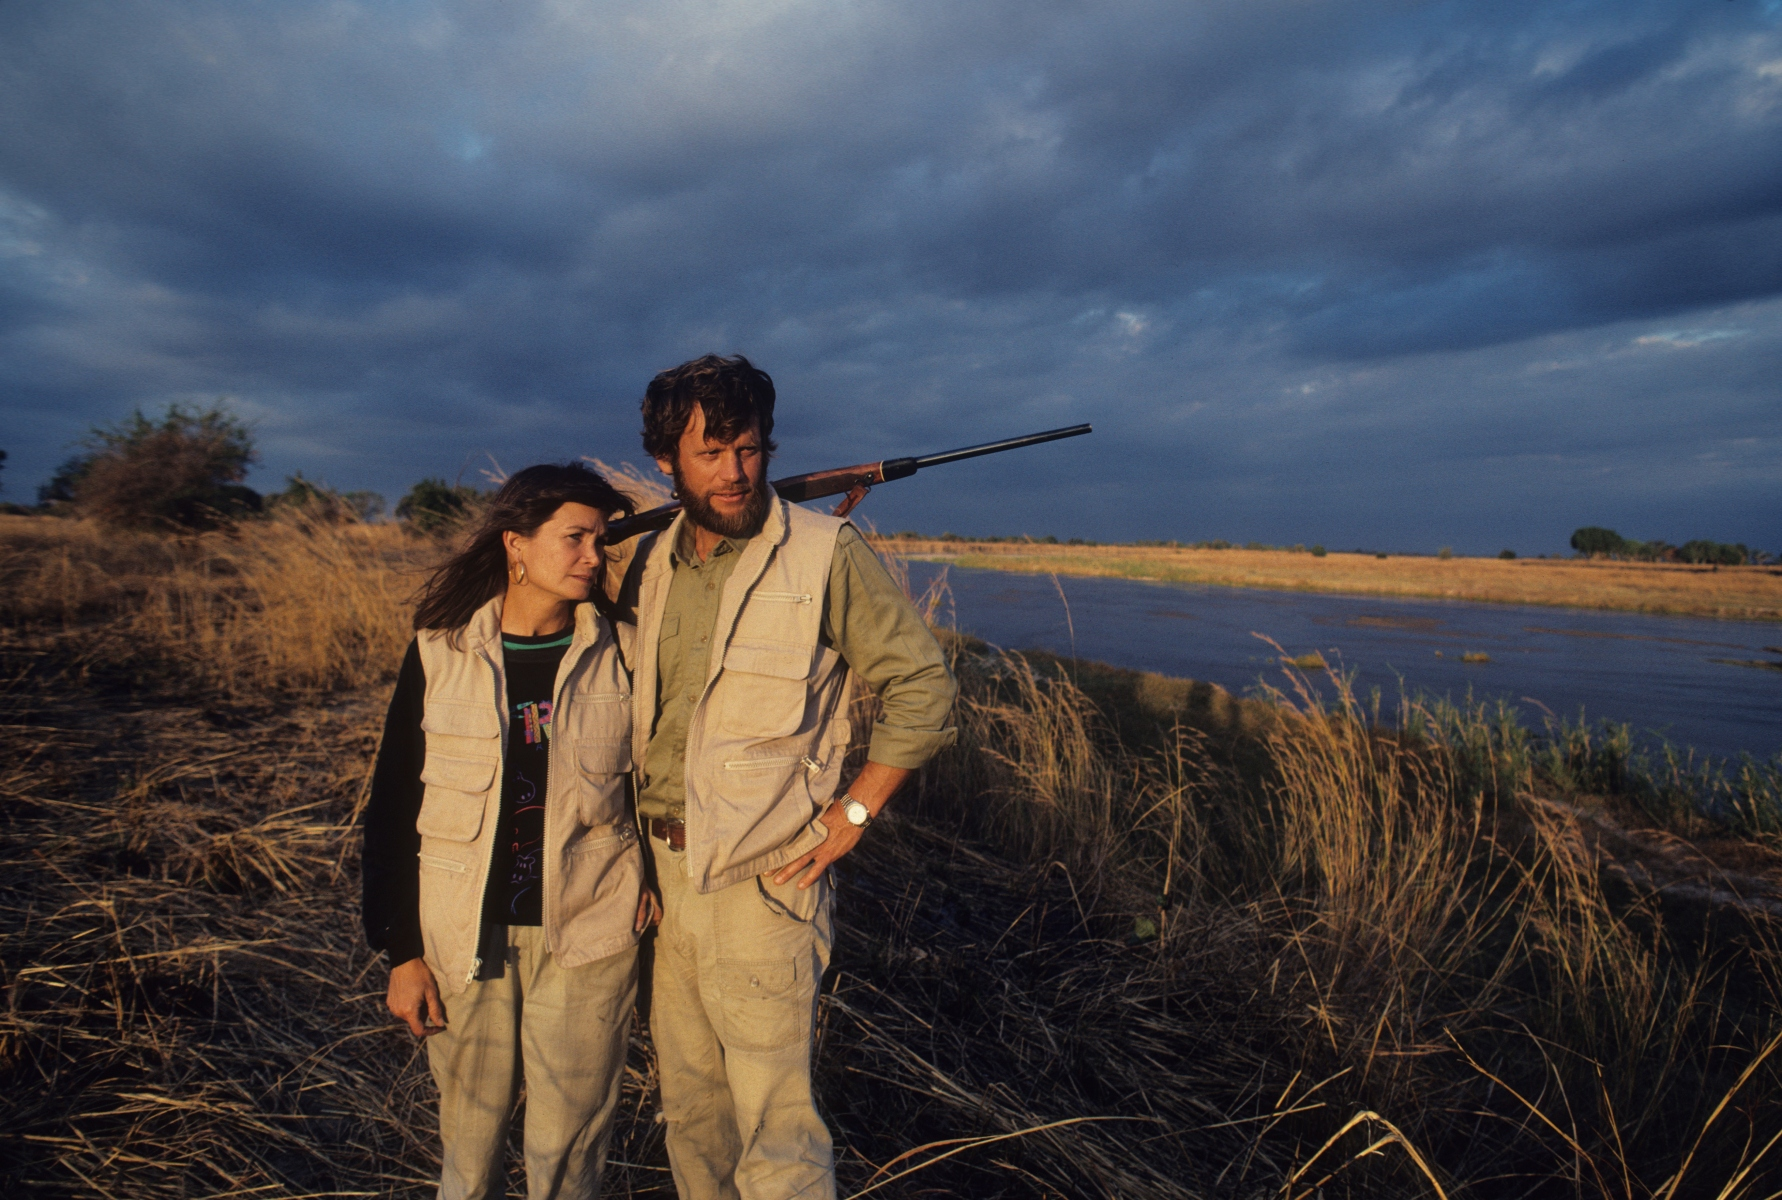 Bestselling author, Delia Owens, and her then-husband in Zambia